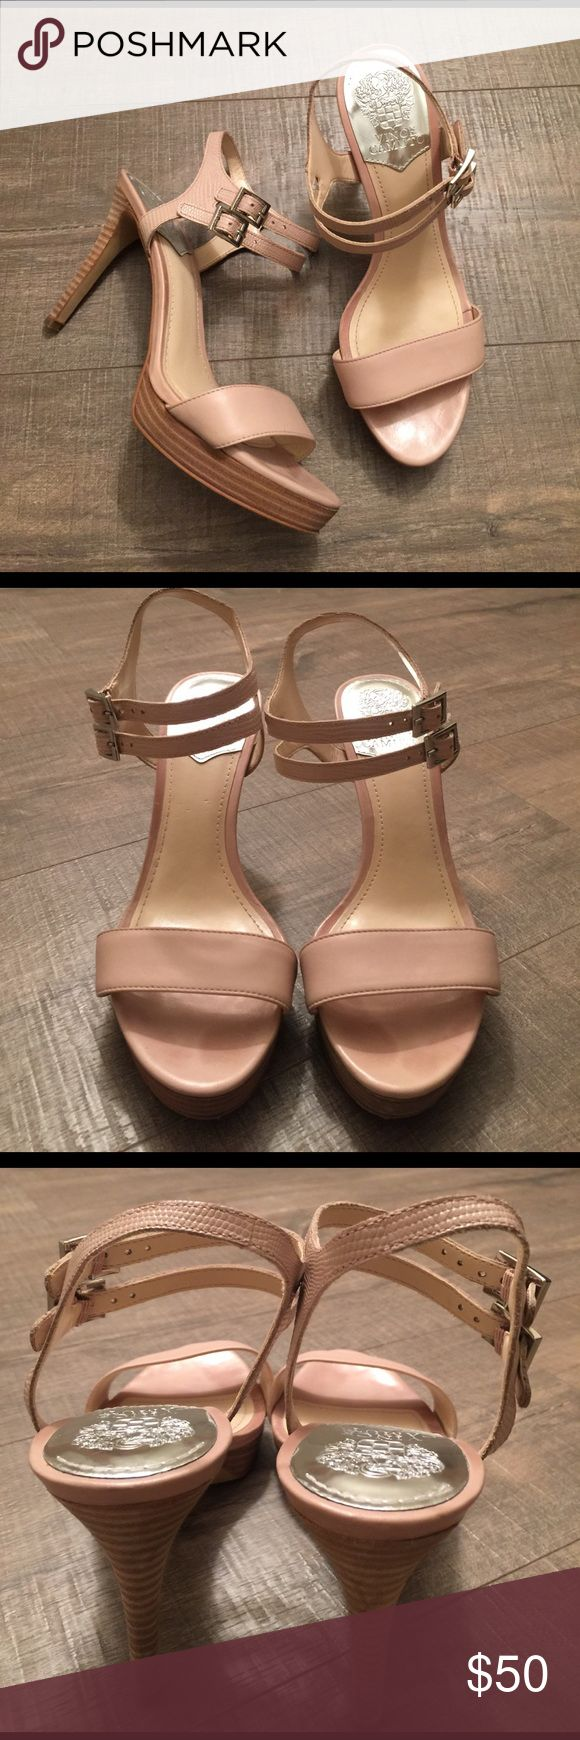 Vince Camuto Renalla cream leather upper heels Gently worn , size 8.5, leather uppers , heel is 4 inches 🌟REASONABLE OFFERS ACCEPTED🌟 Vince Camuto Shoes Heels